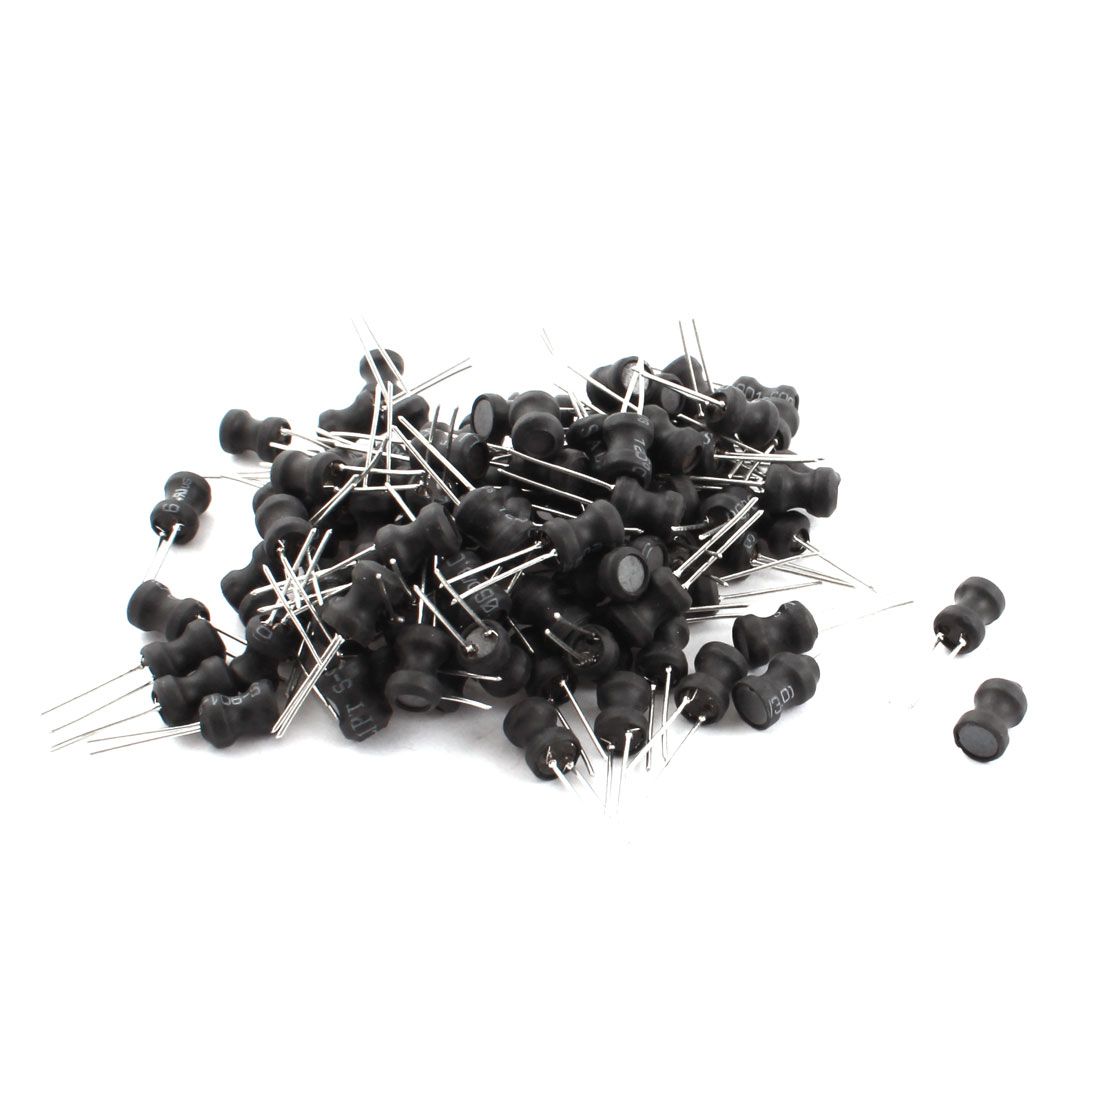 100Pcs 22uH 800mA 6x8mm 10% Tolerance Radial Lead Inductor Black